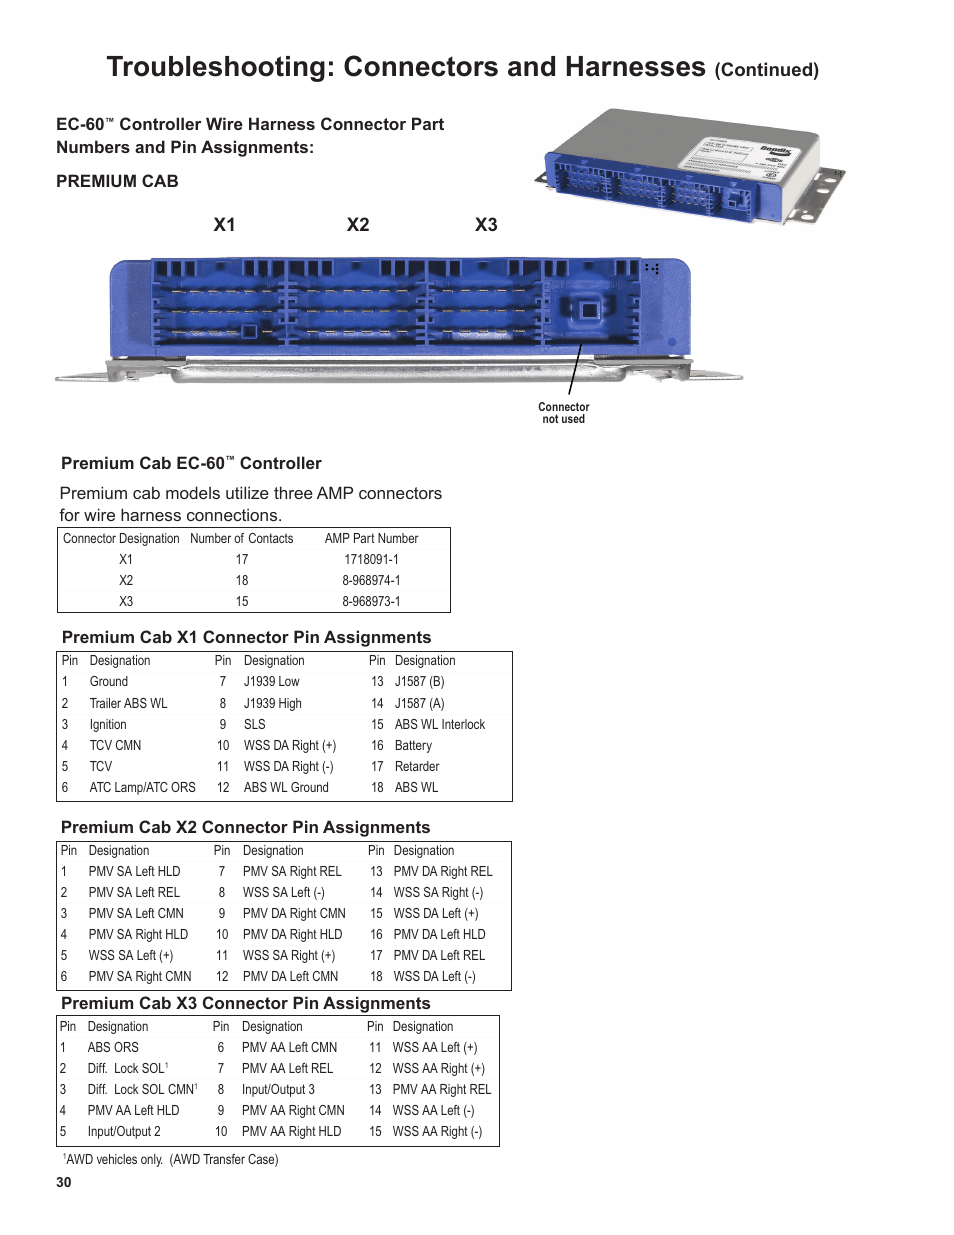 hight resolution of troubleshooting connectors and harnesses x1 x2 x3 continued bendix commercial vehicle systems ec 60 atc std prem controllers user manual page 30